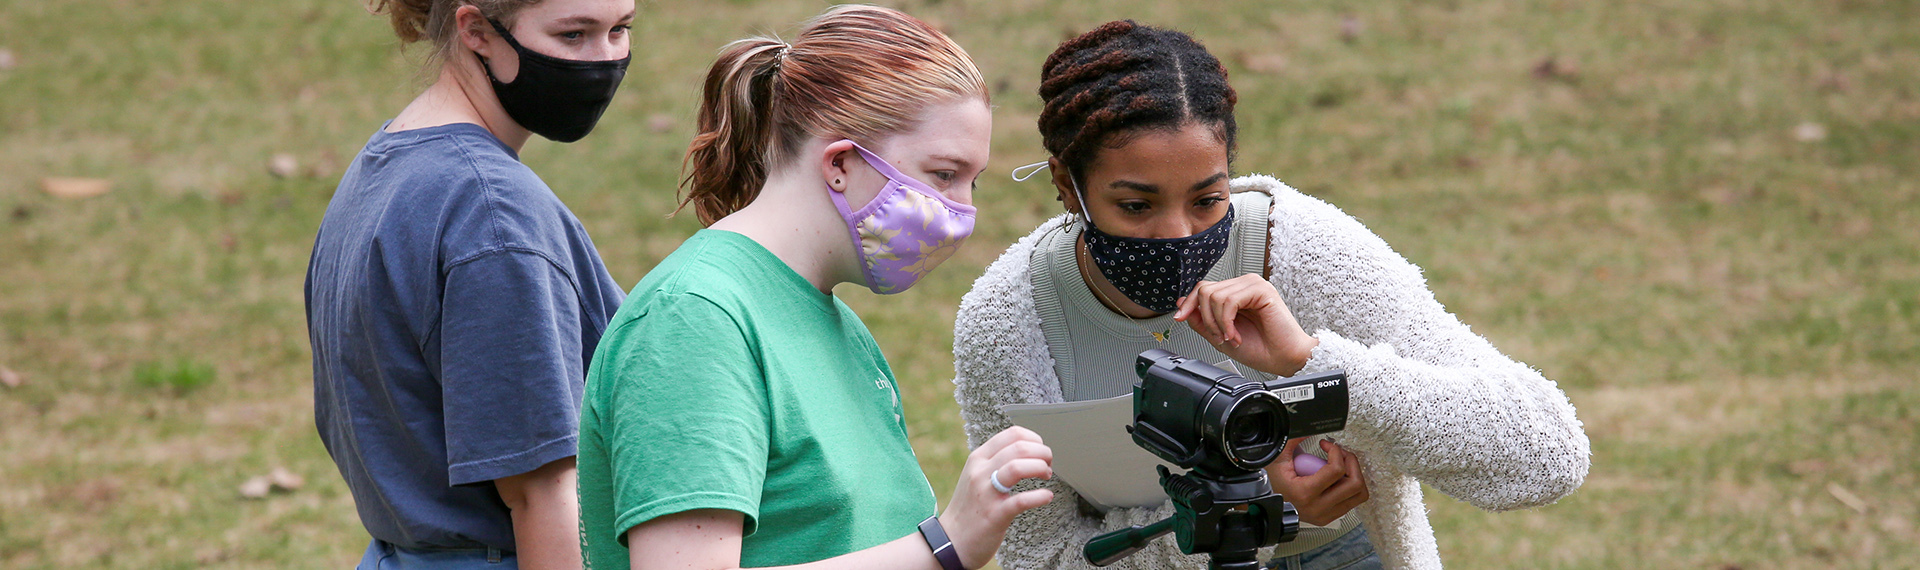 Three masked students look at a video camera on a tripod